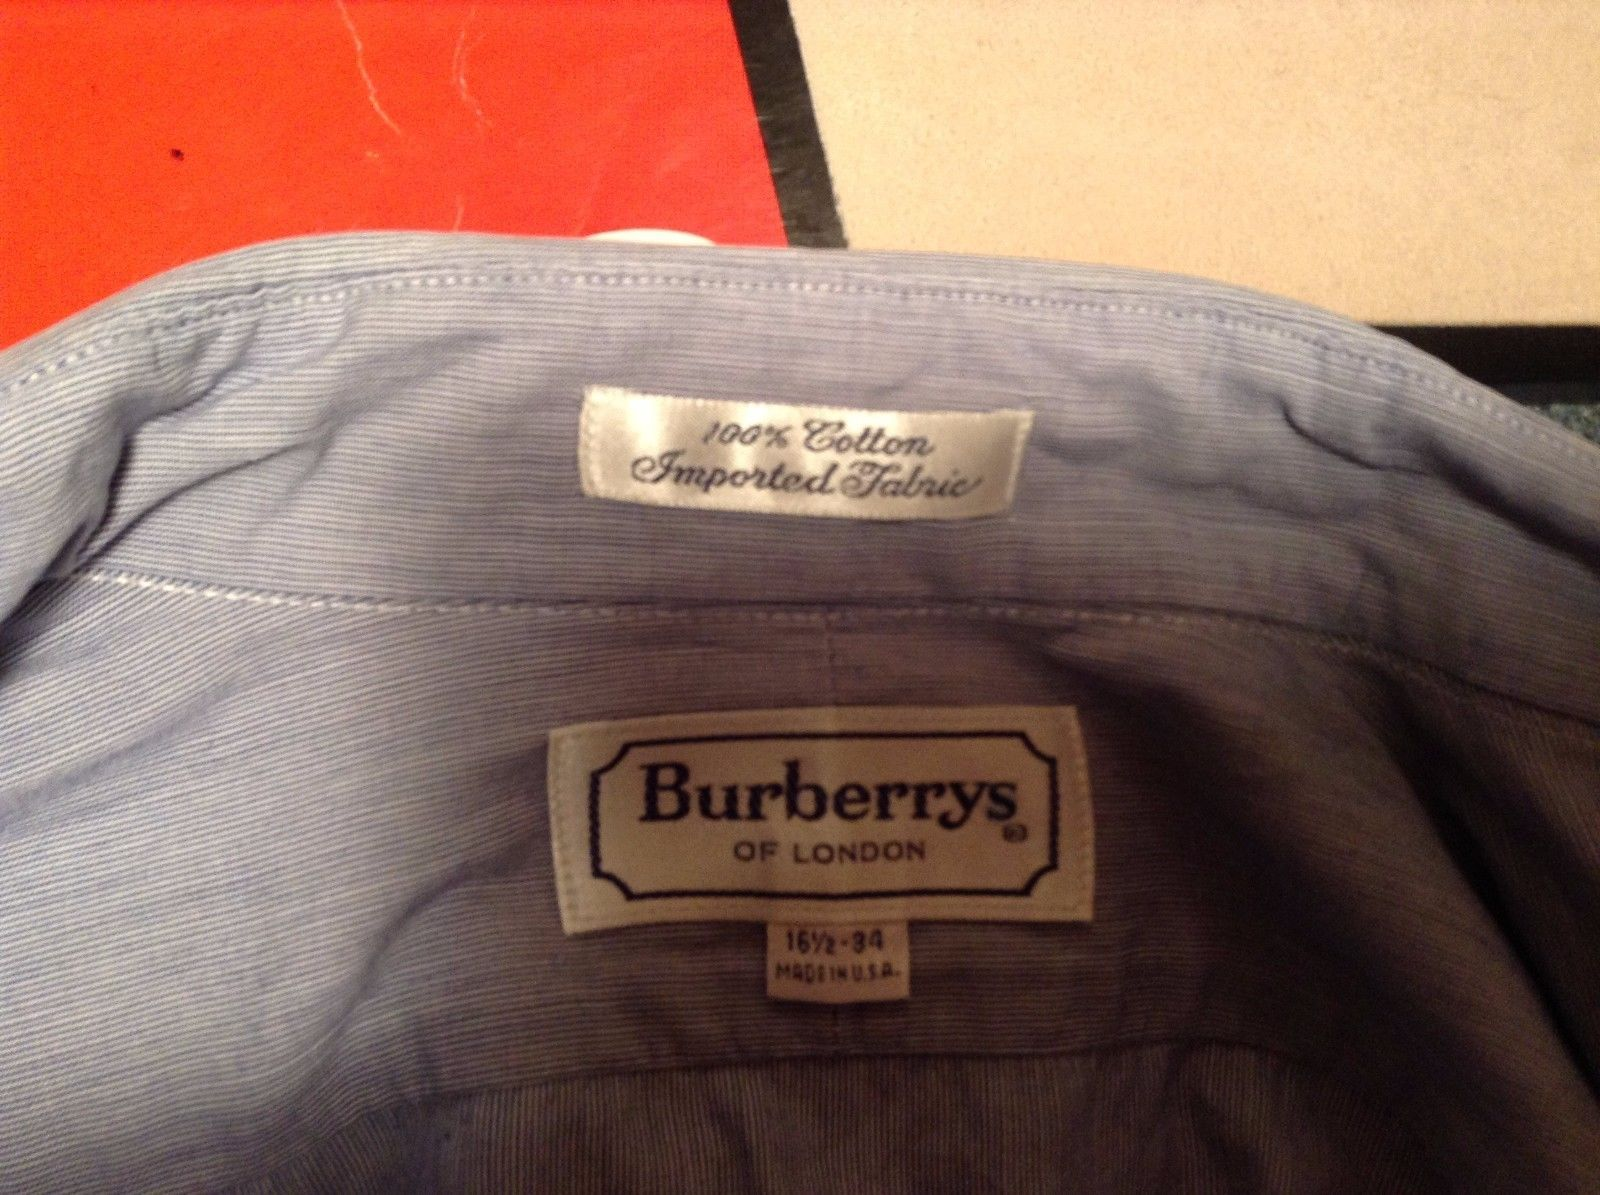 Burberry of London Men's Long Sleeve Cuff Link Med Blue Dress Shirt Sz 16.5/34